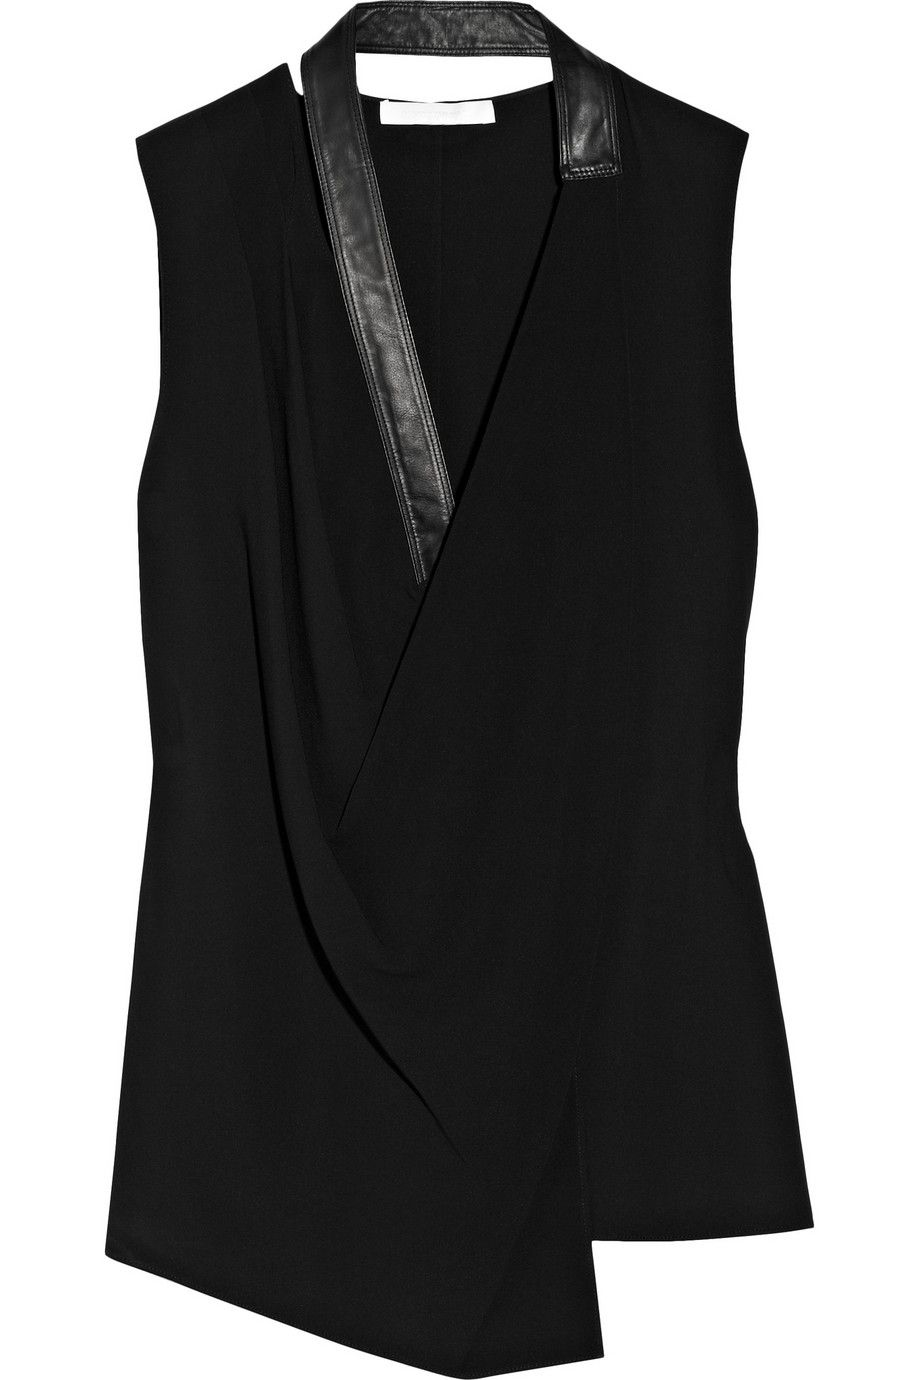 49b8e73388494 Leather-trimmed stretch-knit top by Alexander Wang